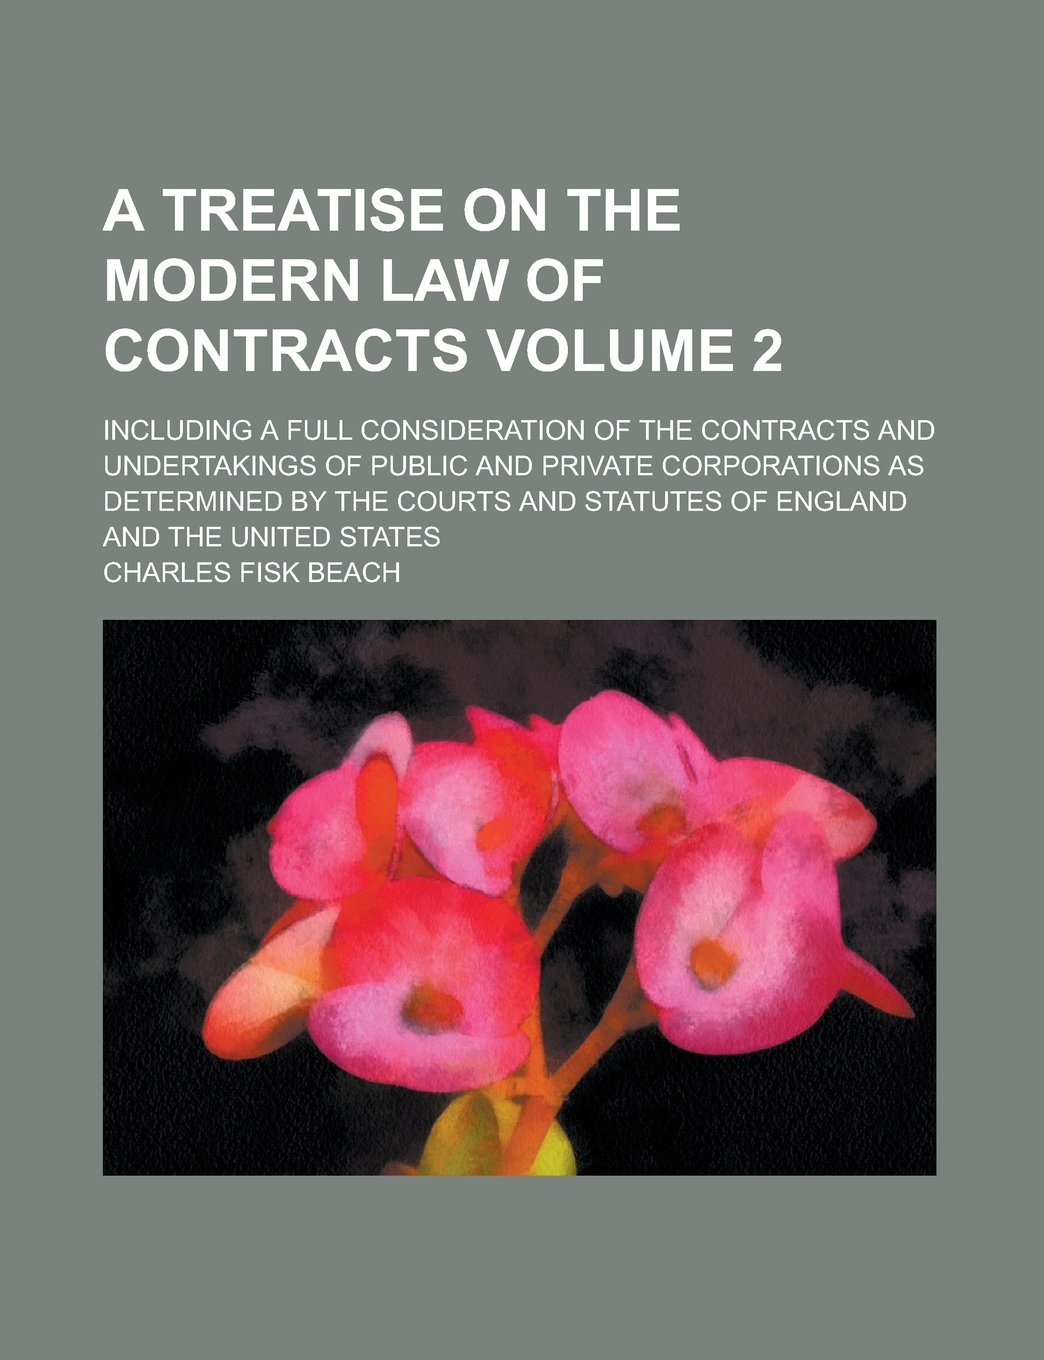 A Treatise on the Modern Law of Contracts